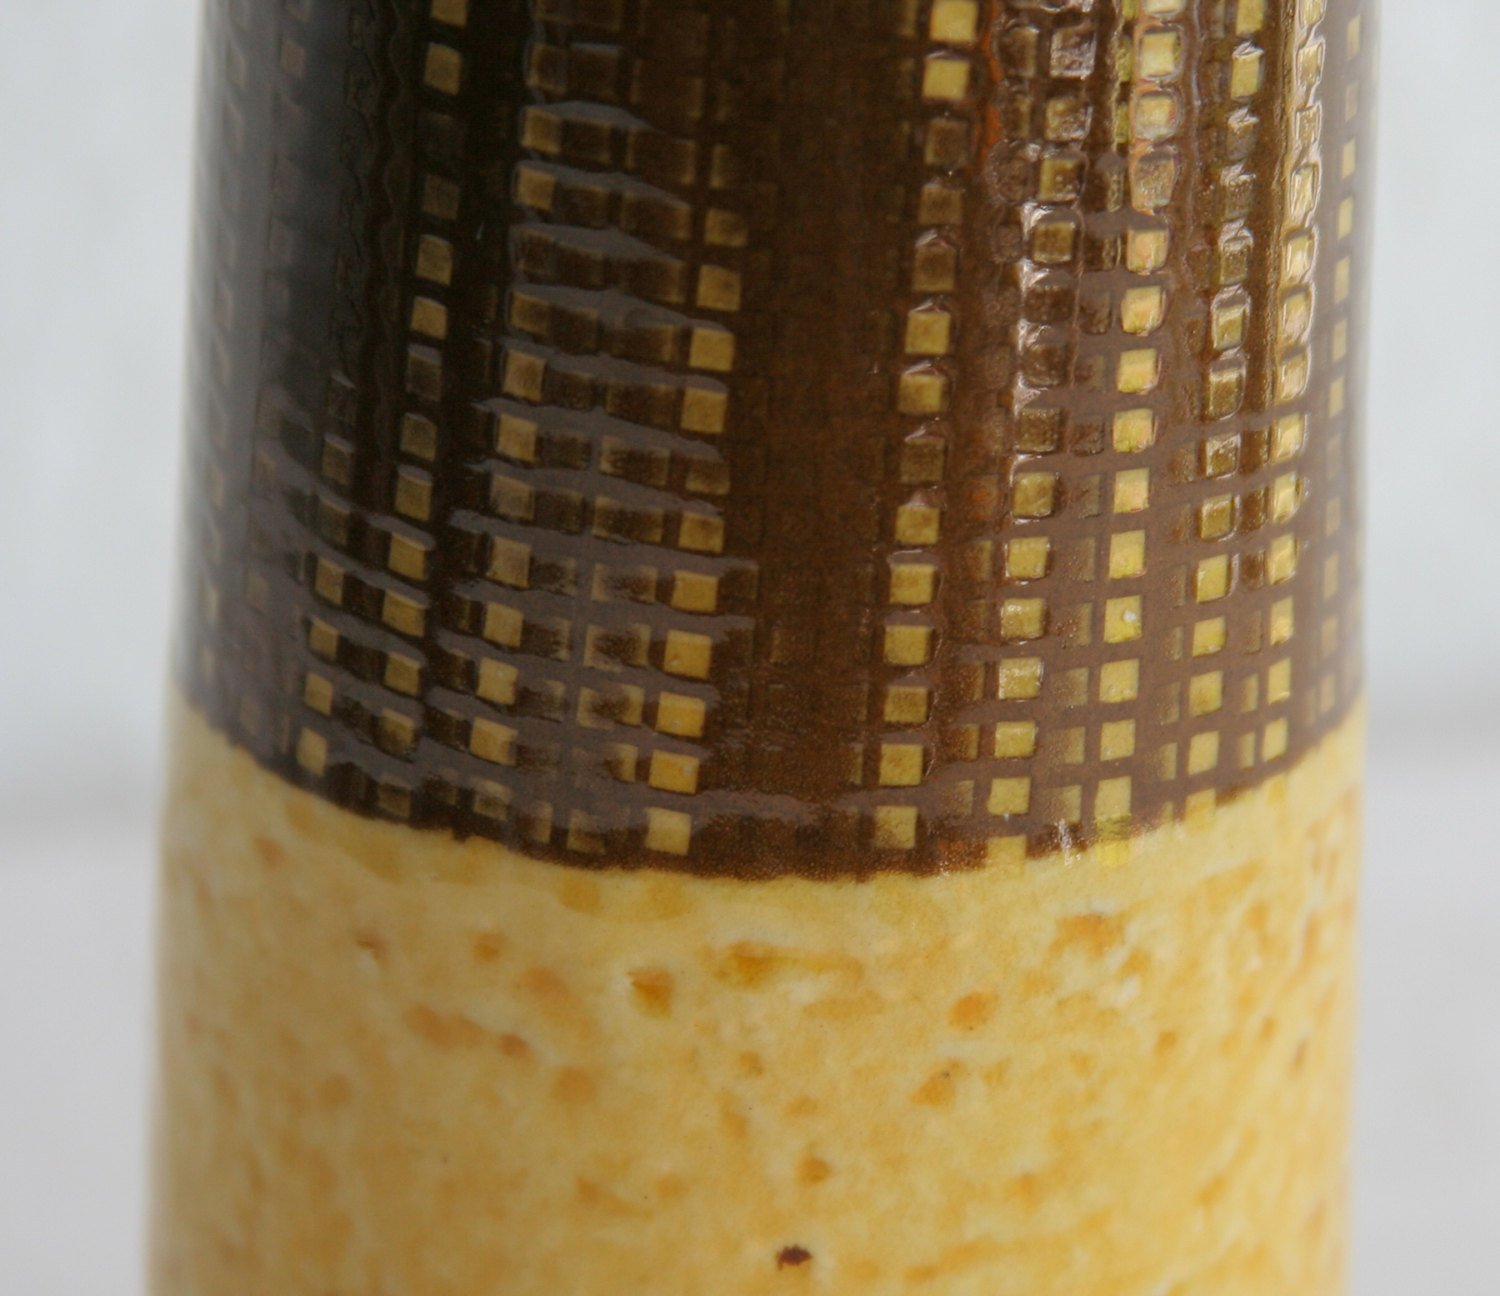 Upsala Ekeby INGRID ATTERBERG Yondel / Gondel Brown and Yellow Glazed Stoneware Vase - Mollaris.com